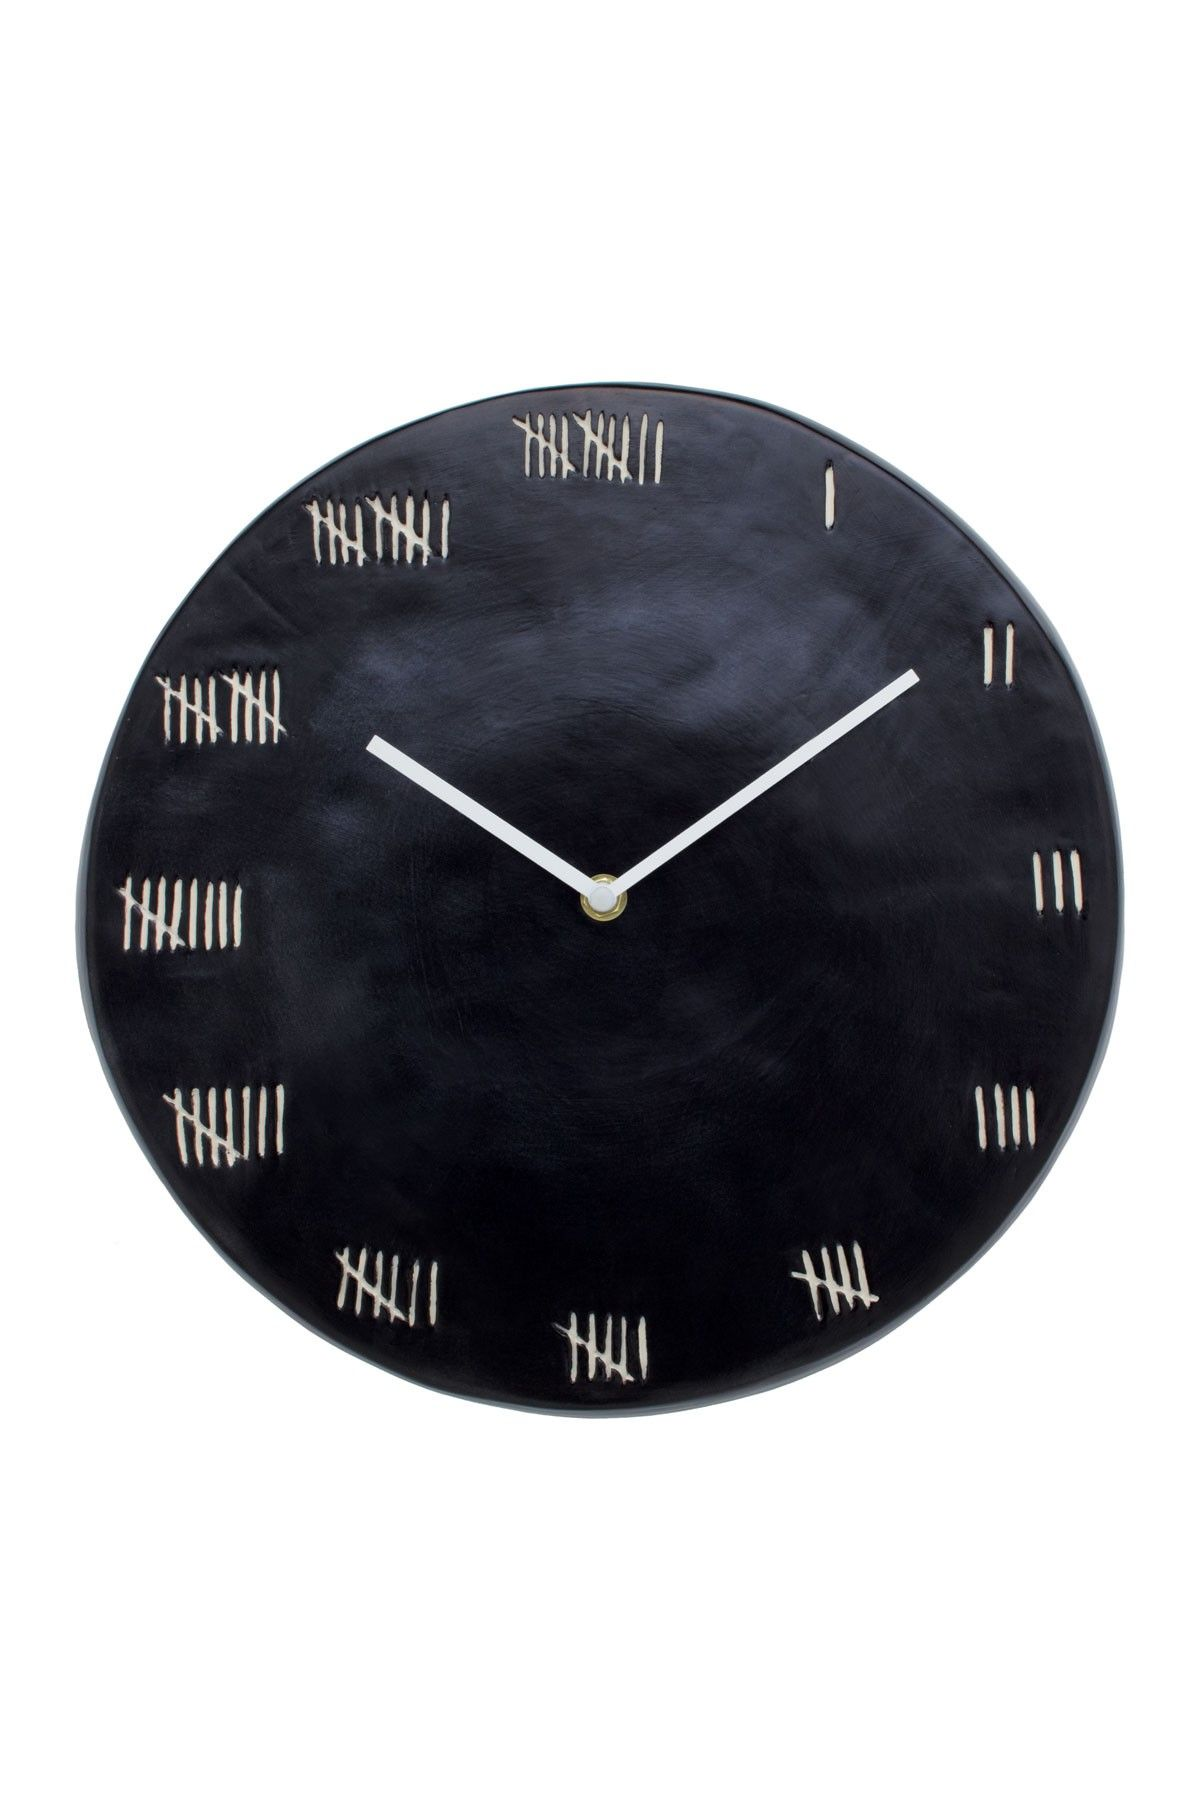 """Magenta Black Chalkboard Round Clock from  HauteLook. A unique chalkboard round clock ready to grace your wall right on time with style and ease. 12""""Diameter x 1""""D. $39.00"""